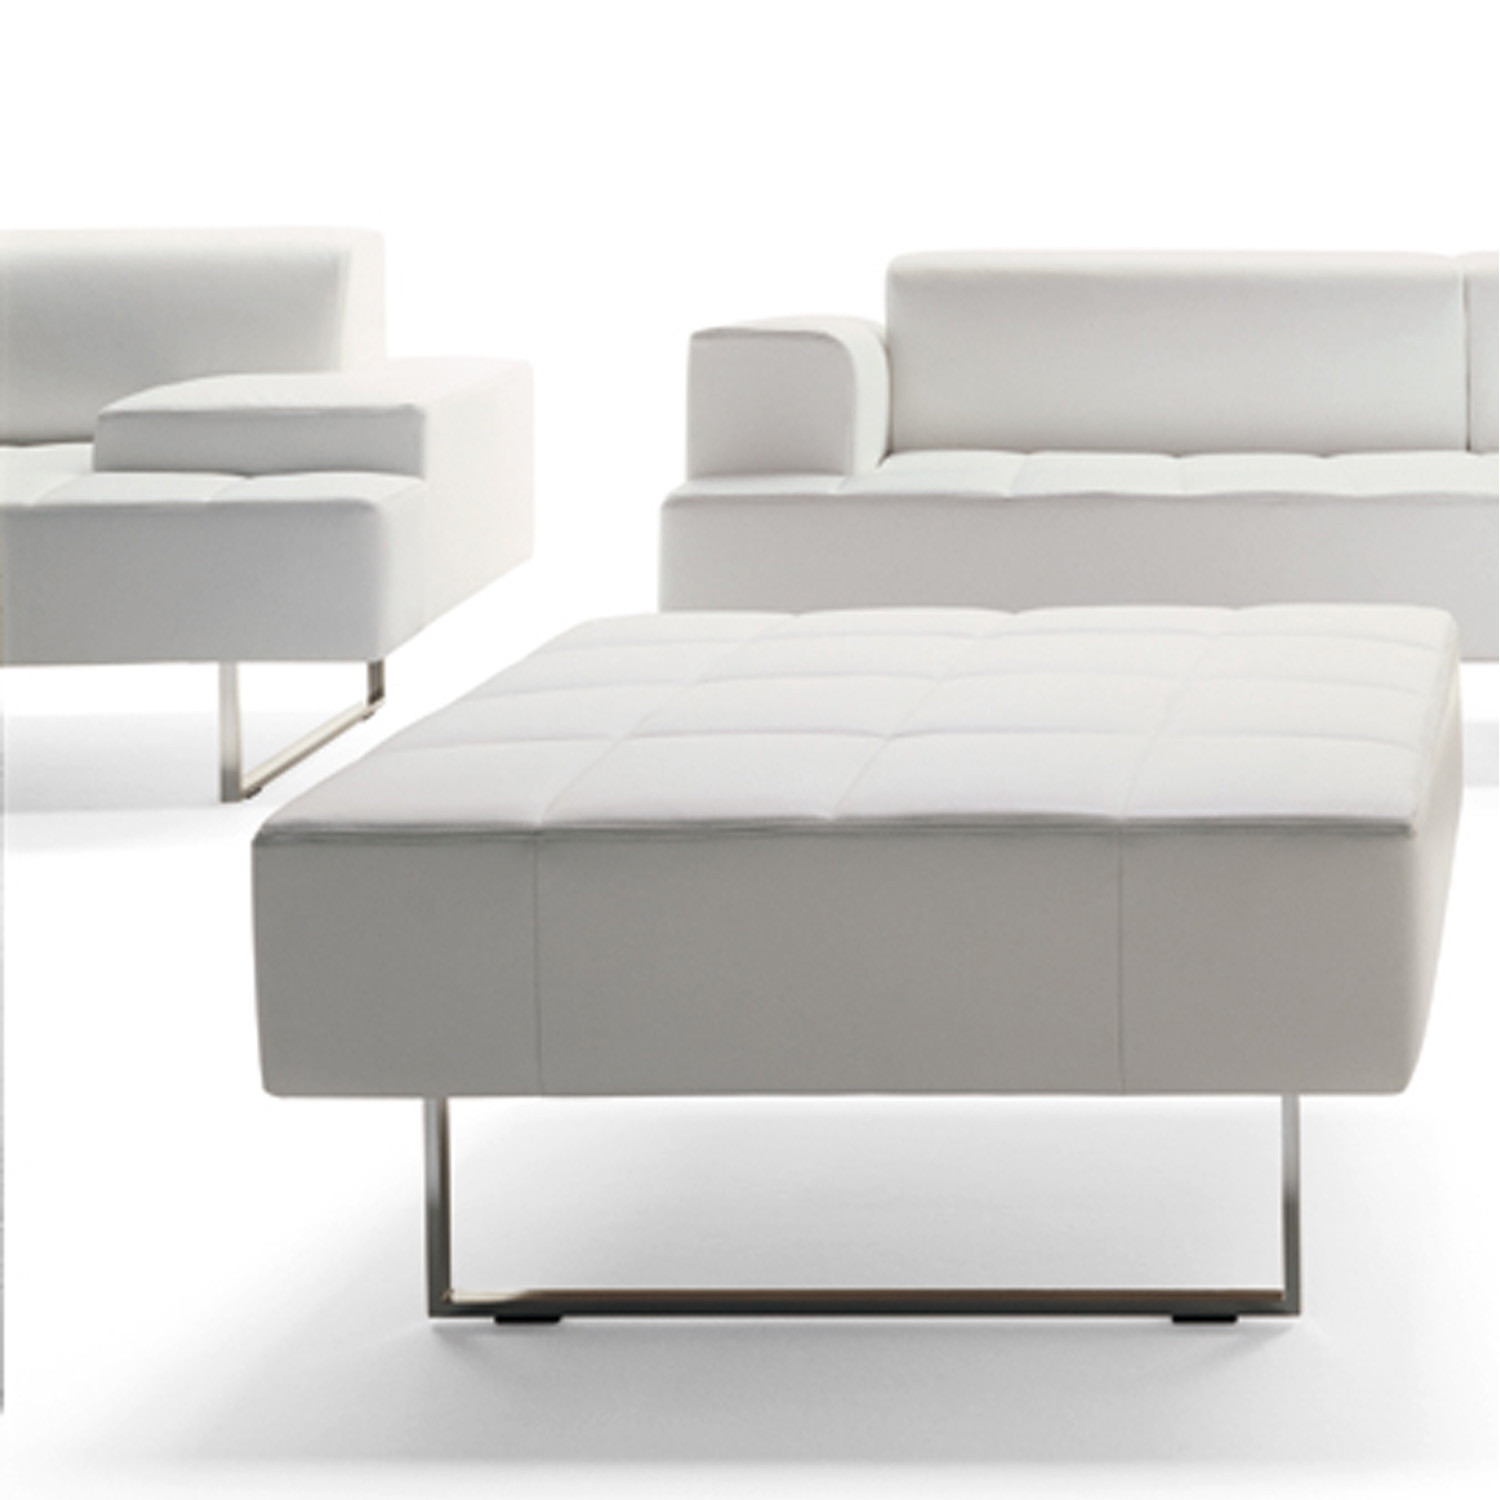 Quadra Sofas with pouf footrest